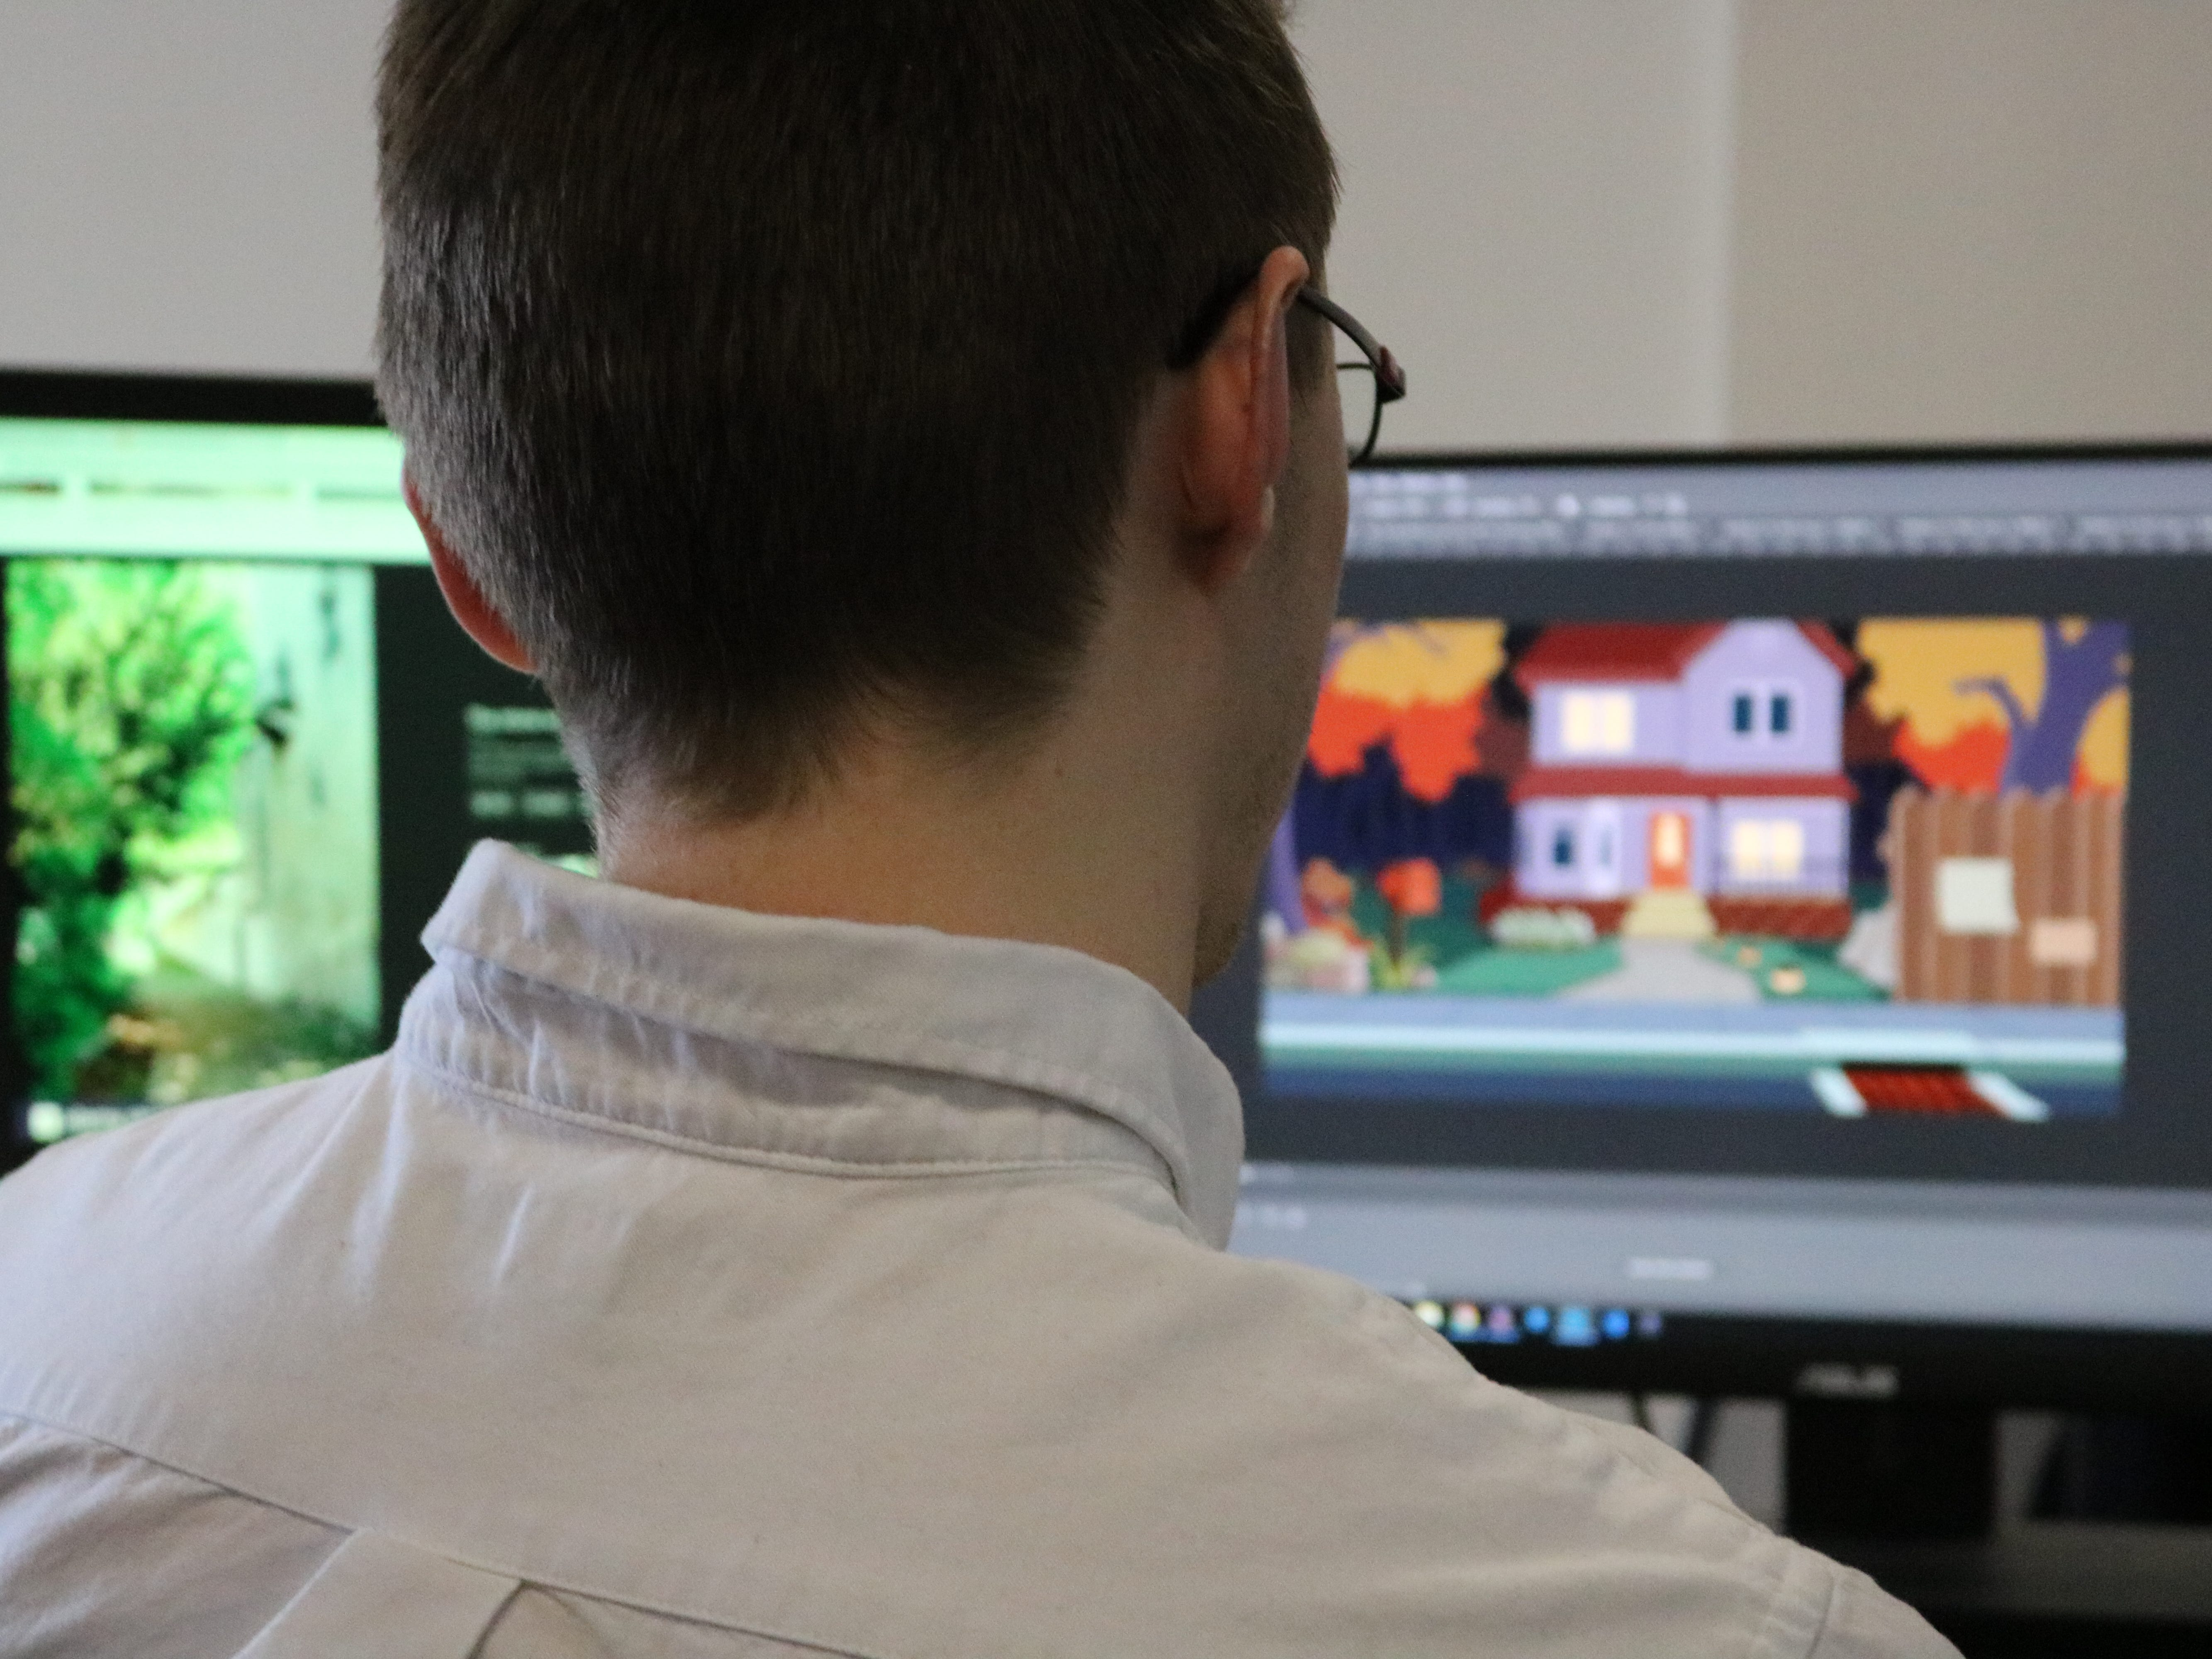 Double screens are the standard in game design studios. This Sundae Month employee at Chase Mill in Burlington, shows off some animation that may become part of a game.